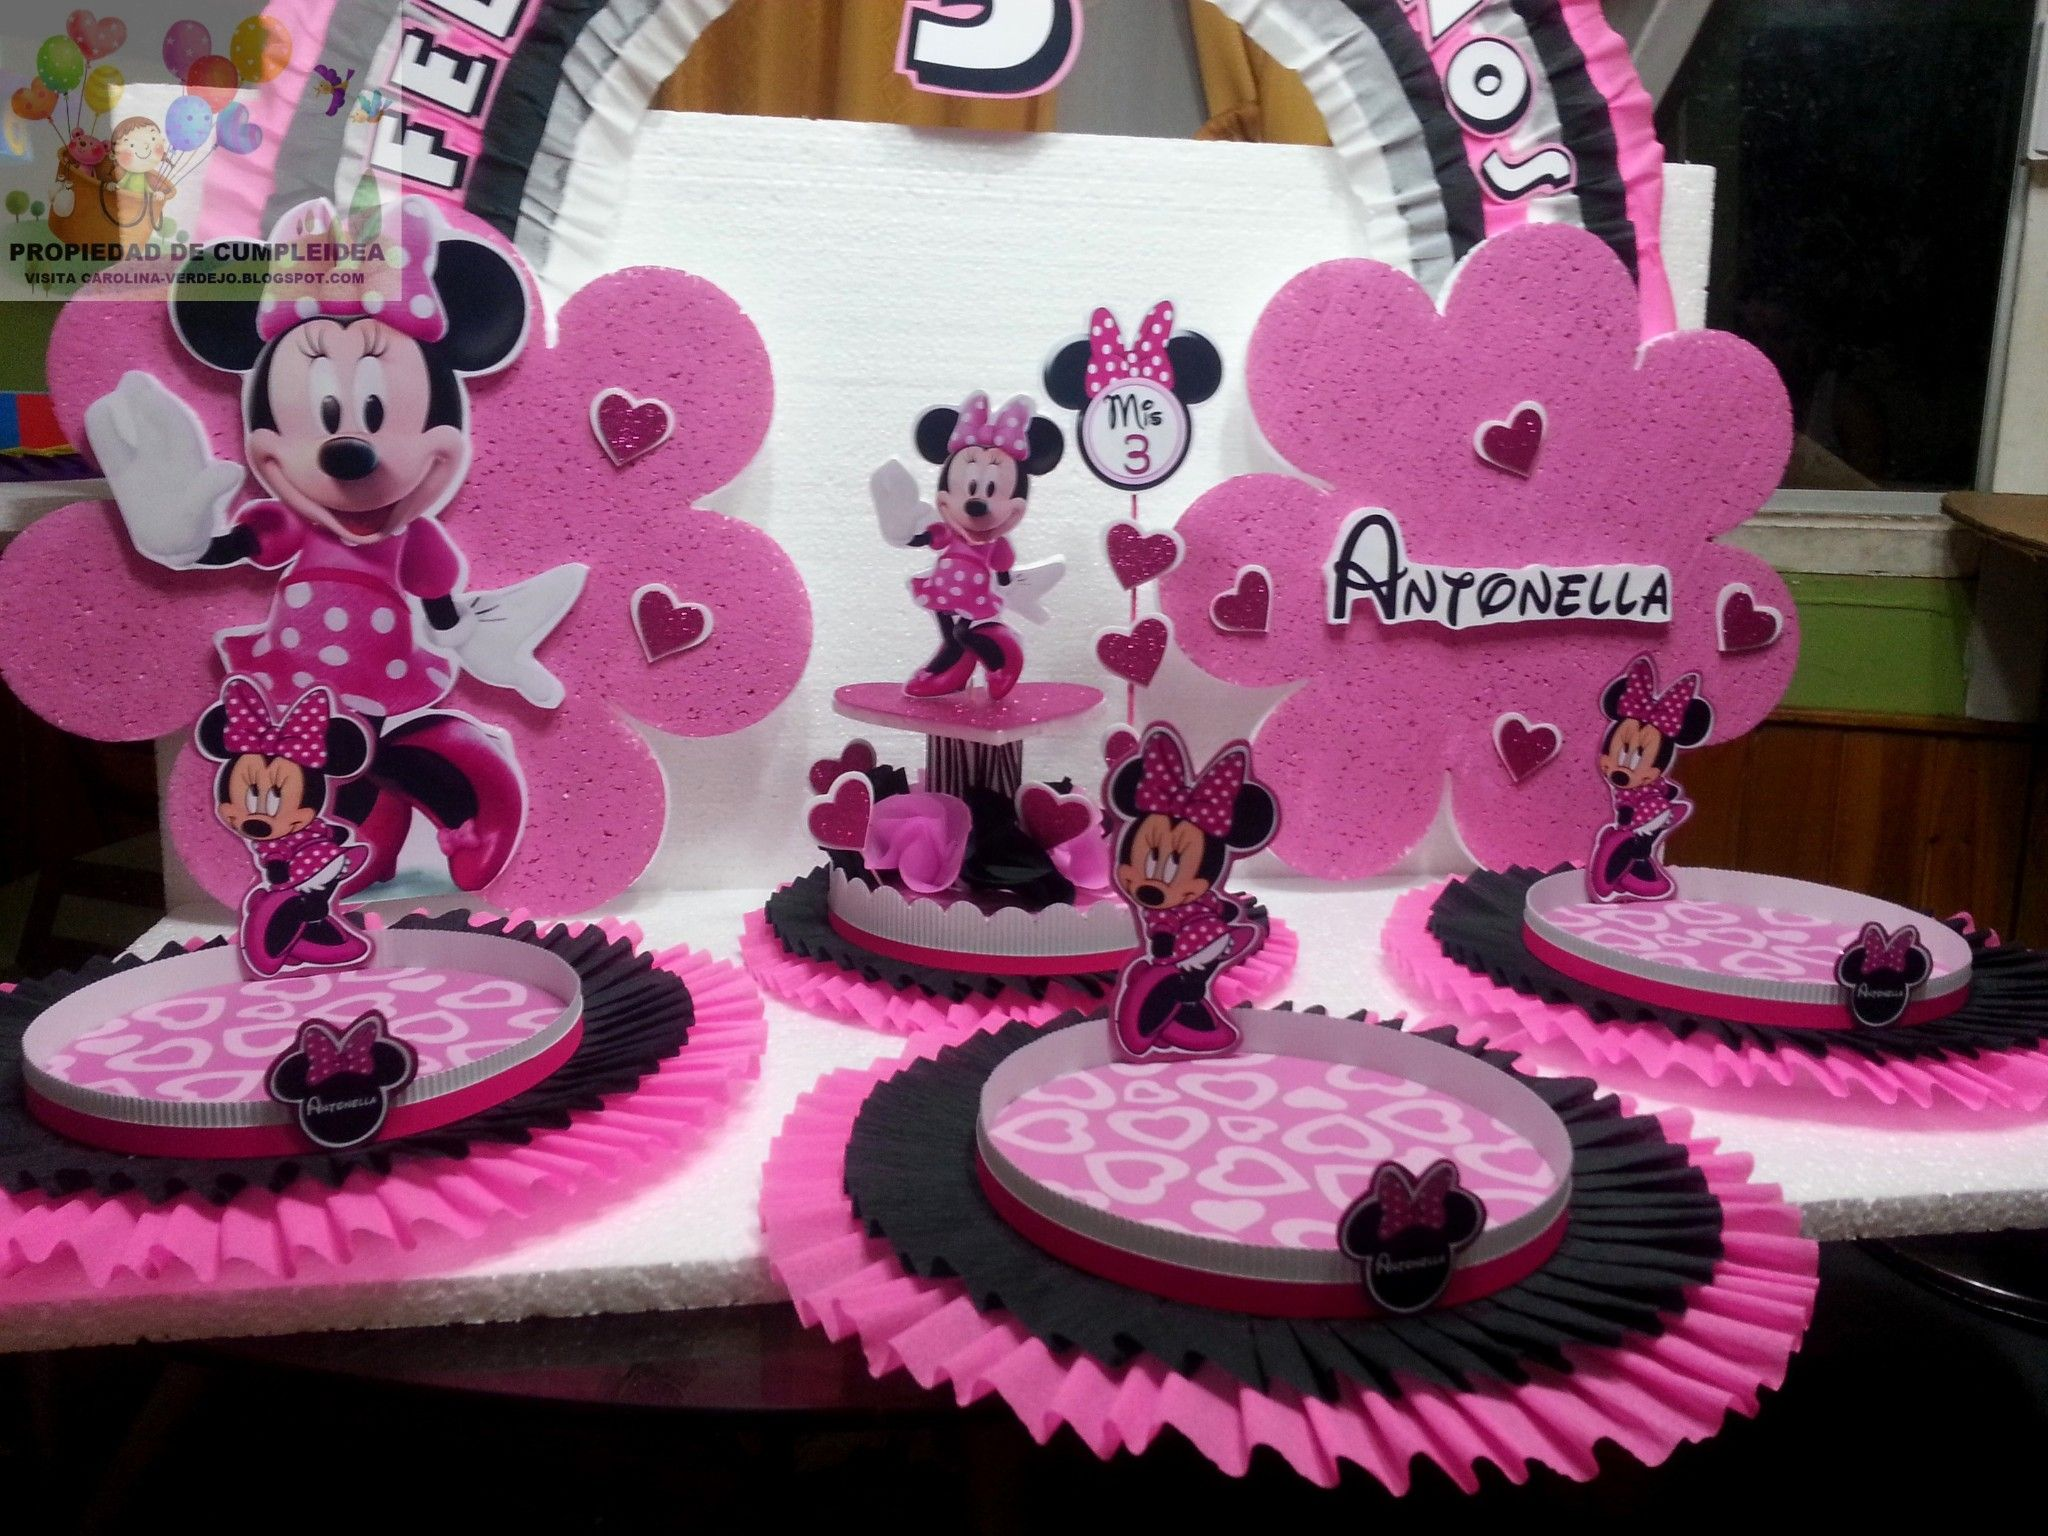 Decoracion de fiestas infantiles minnie mouse 1 ideas for Decoracion estados unidos